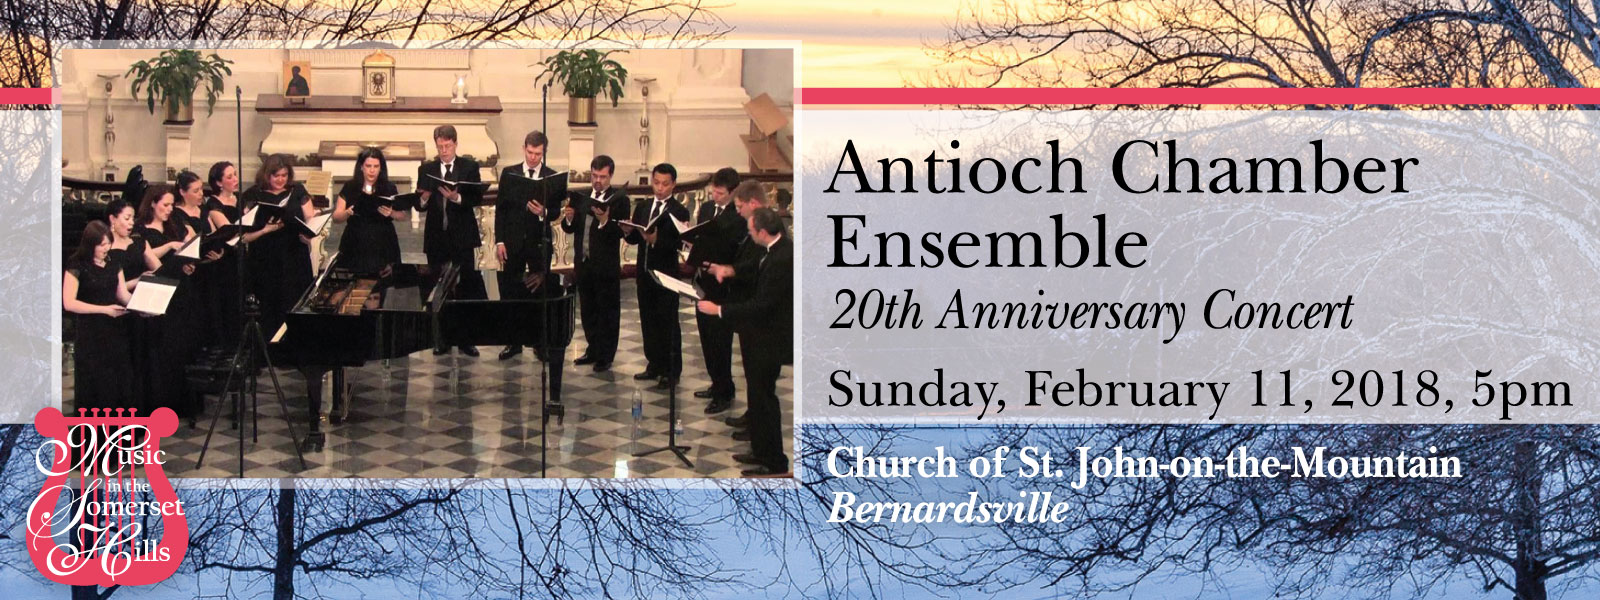 Tickets for Antioch Chamber Ensemble: 20th Anniversary Concert in Bernardsville from ShowClix